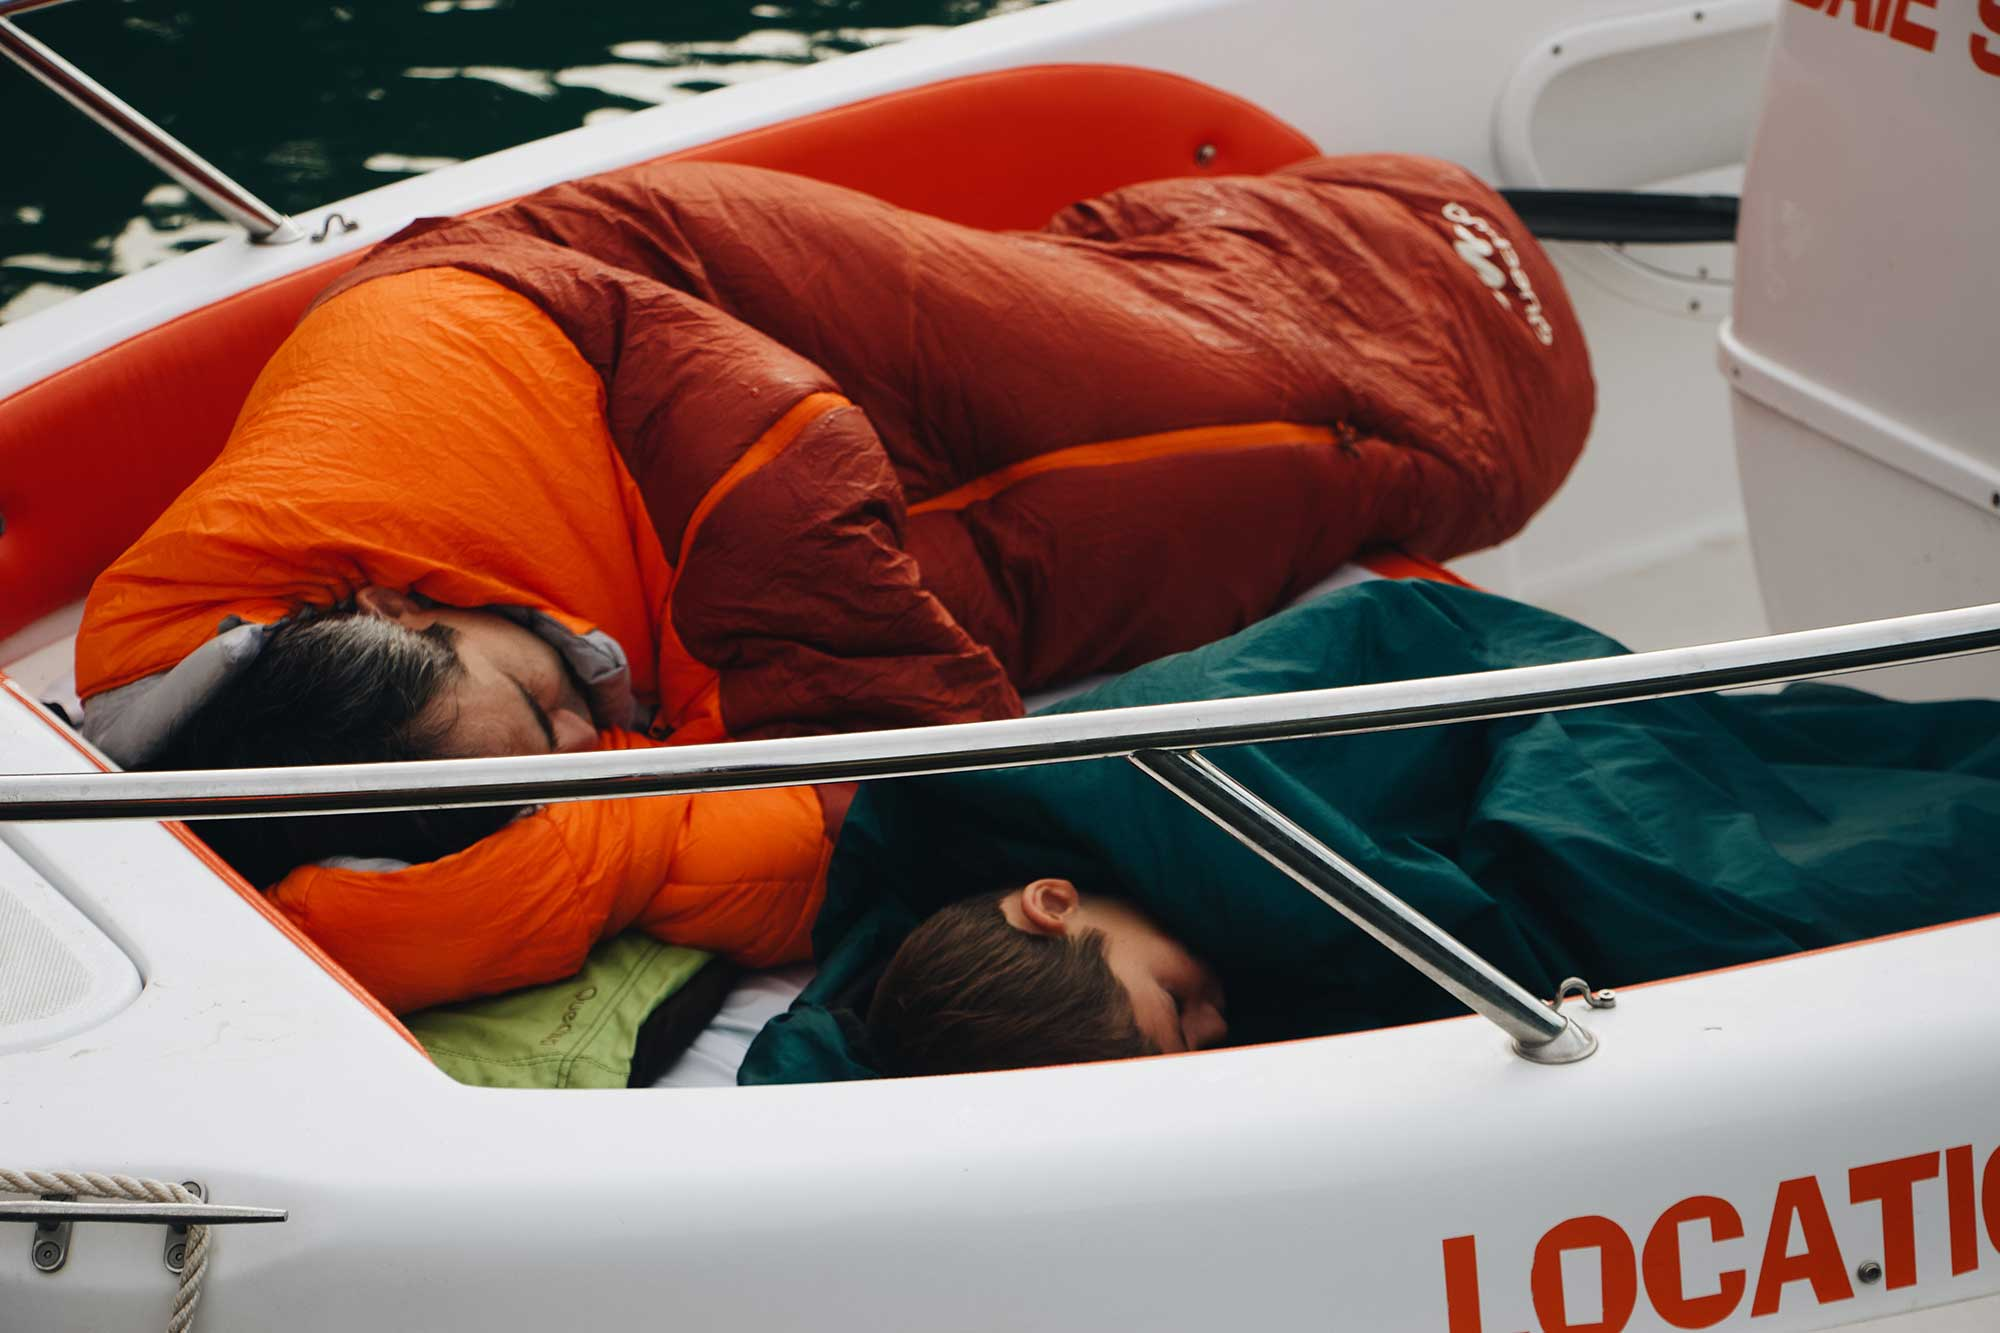 Two people sleeping on a boat